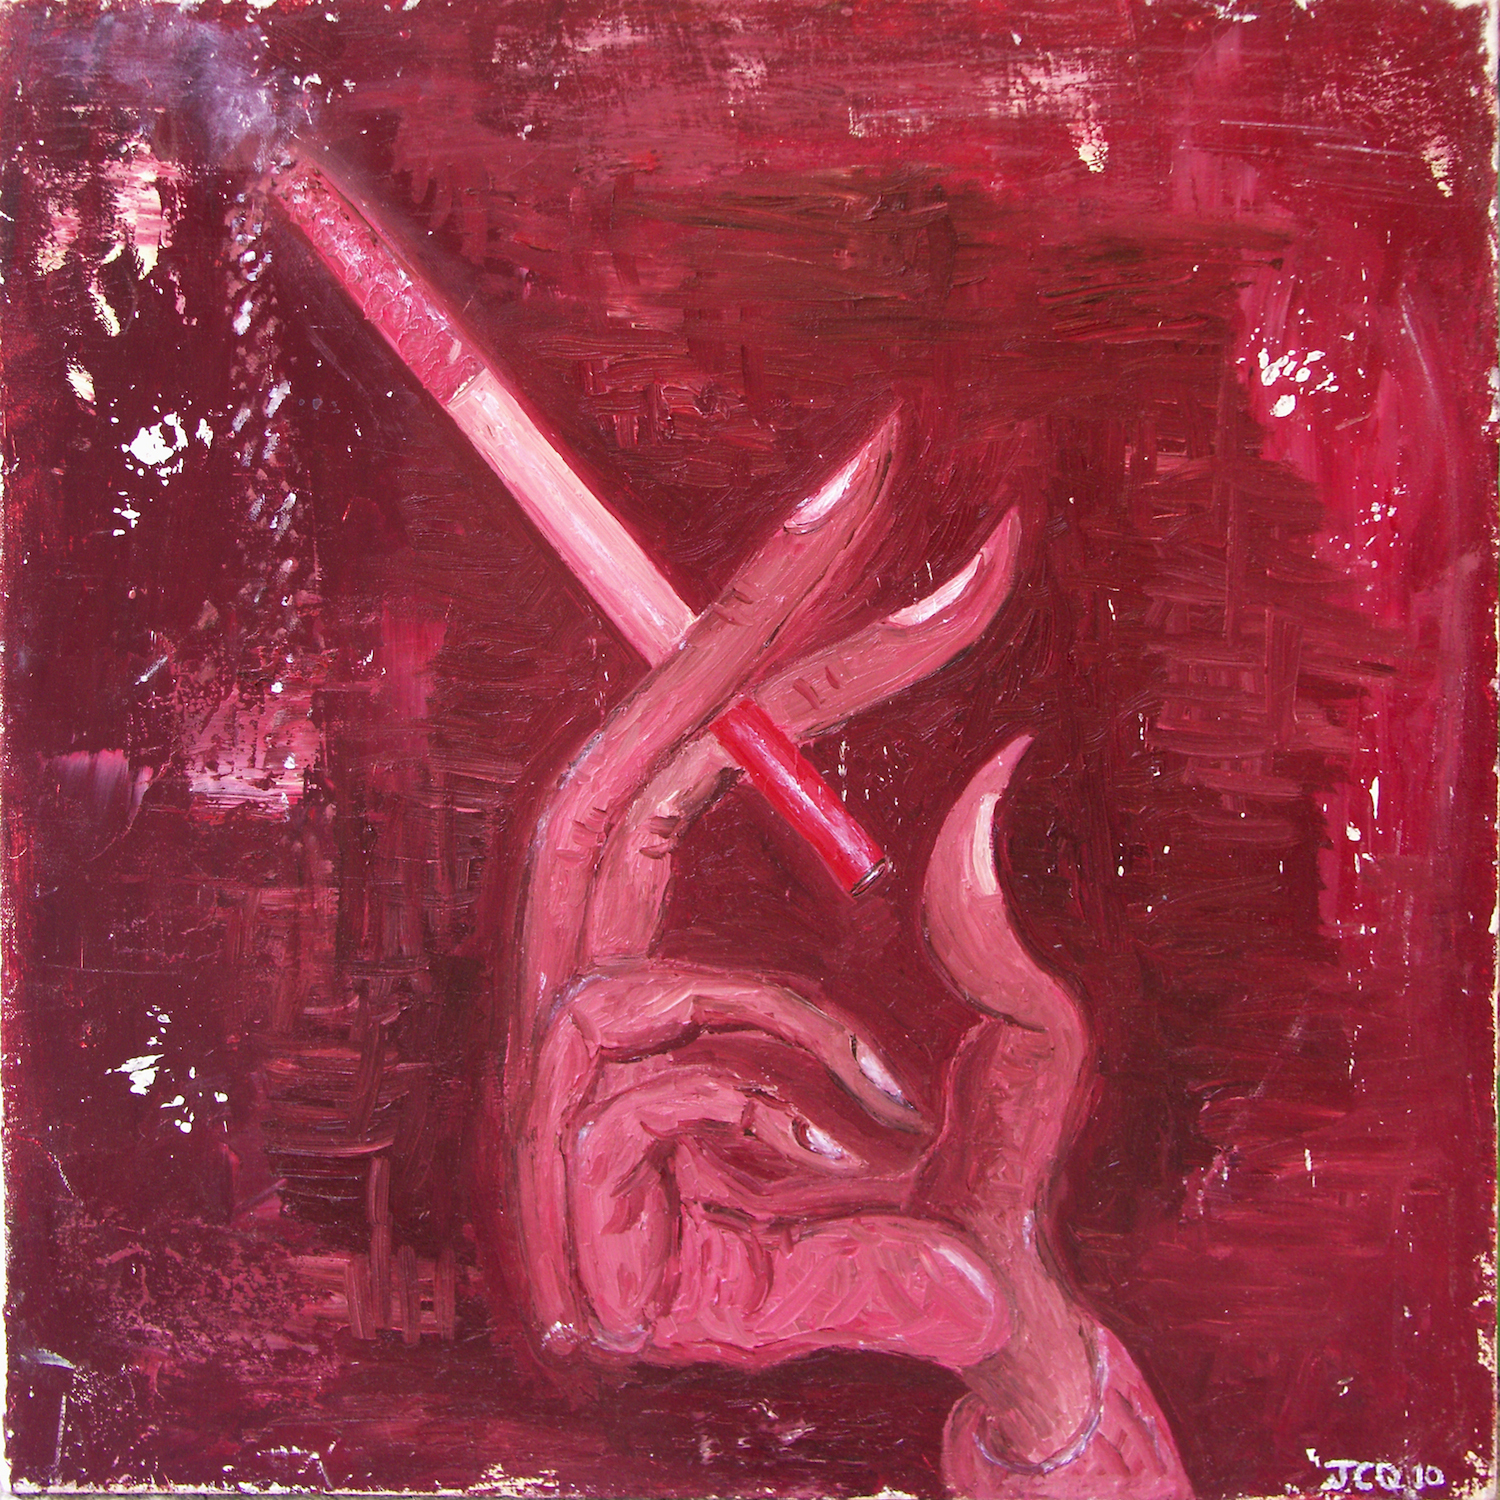 Untitled (red hand)